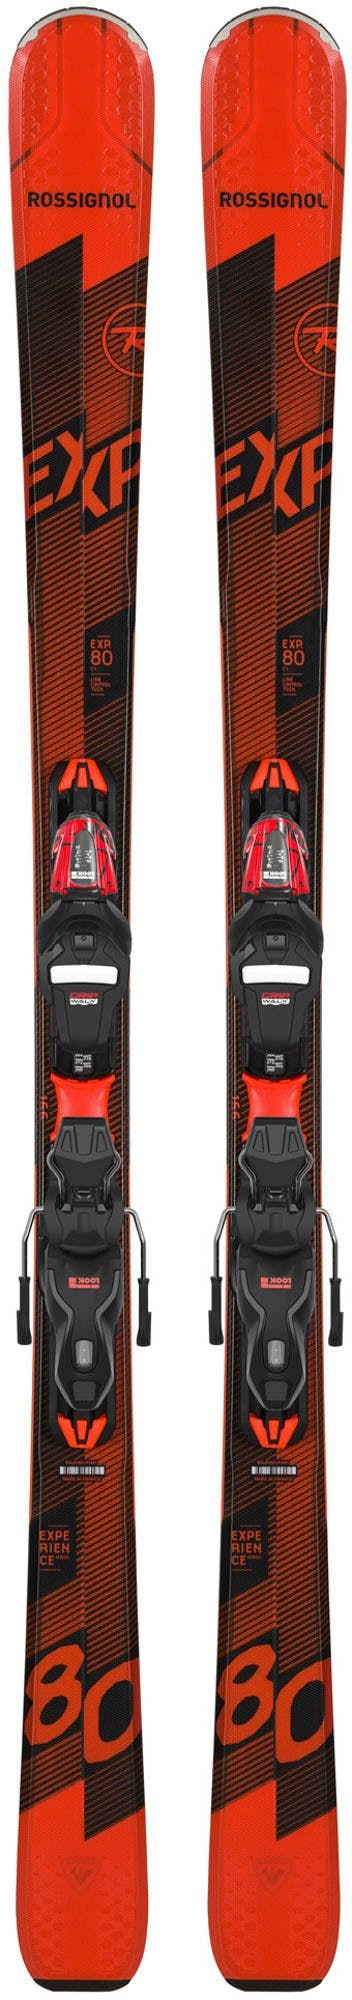 Rossignol Experience 80 CI Skis with Xpress 11 Gw Bindings